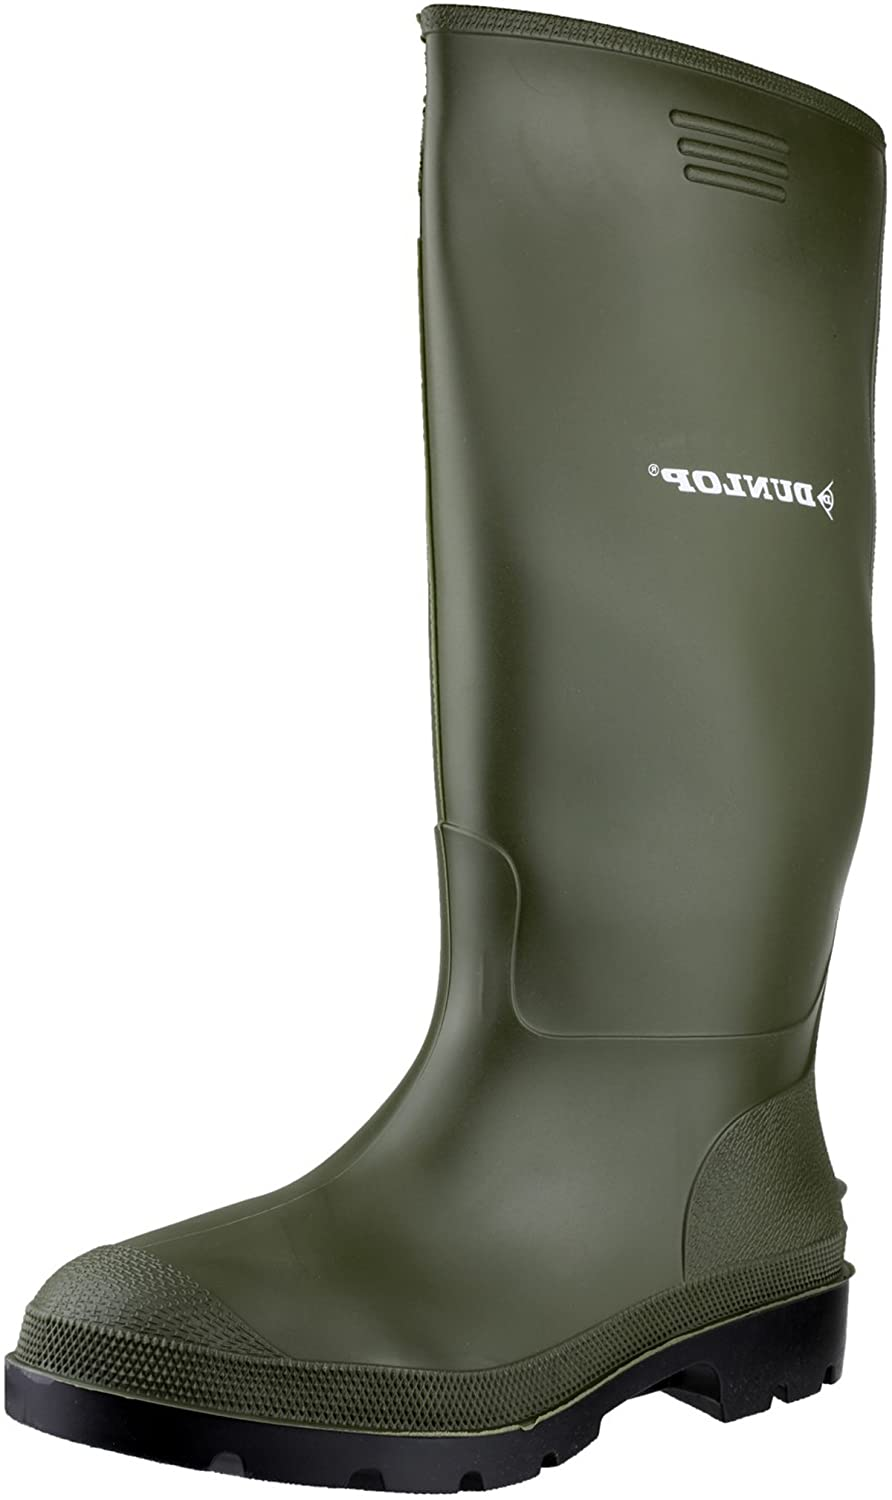 61ea25784dbe46 Dunlop Pricemastor 380VP Safety Work Wellington Wellies Boot Mens Footwear  Green  Amazon.co.uk  Shoes   Bags